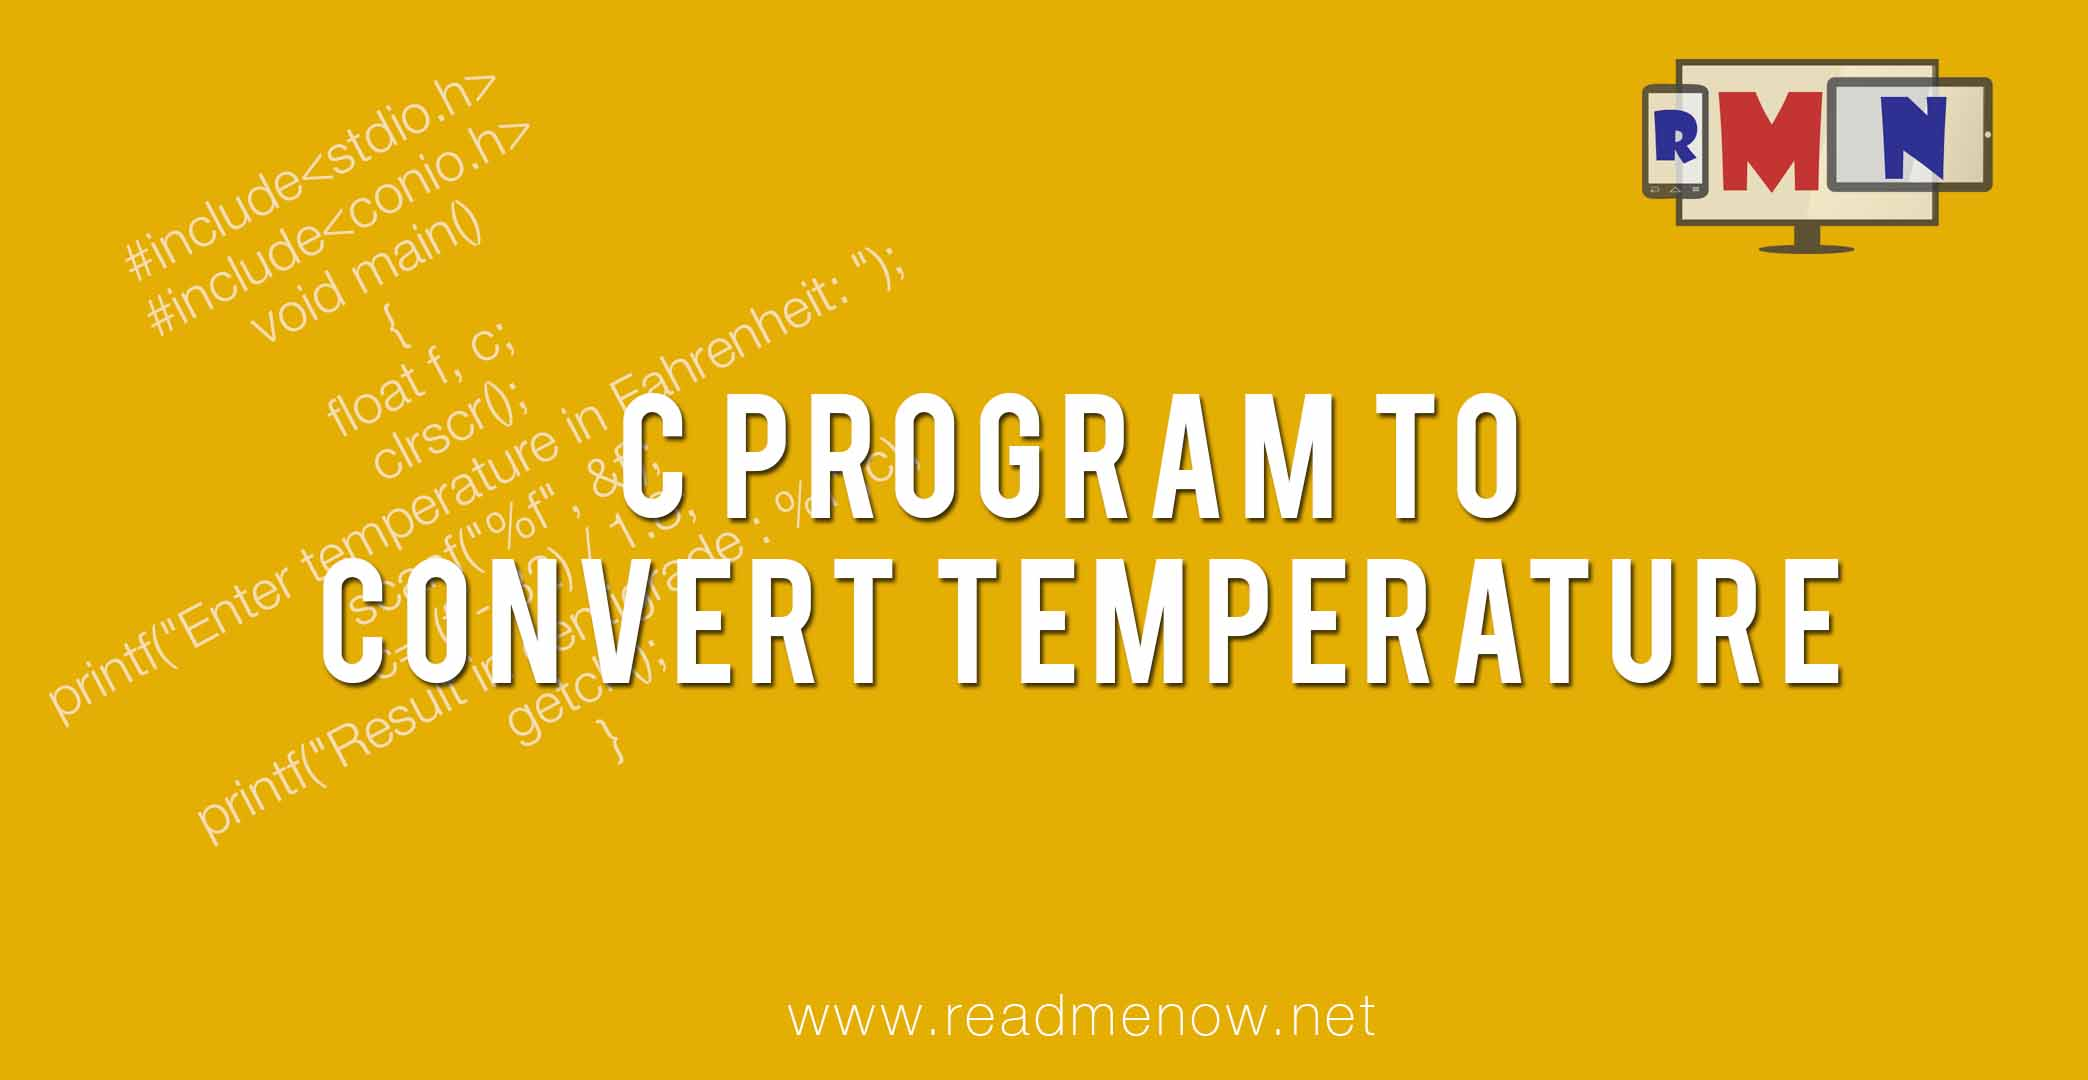 Convert Fahrenheit to Centigrade in C Programming